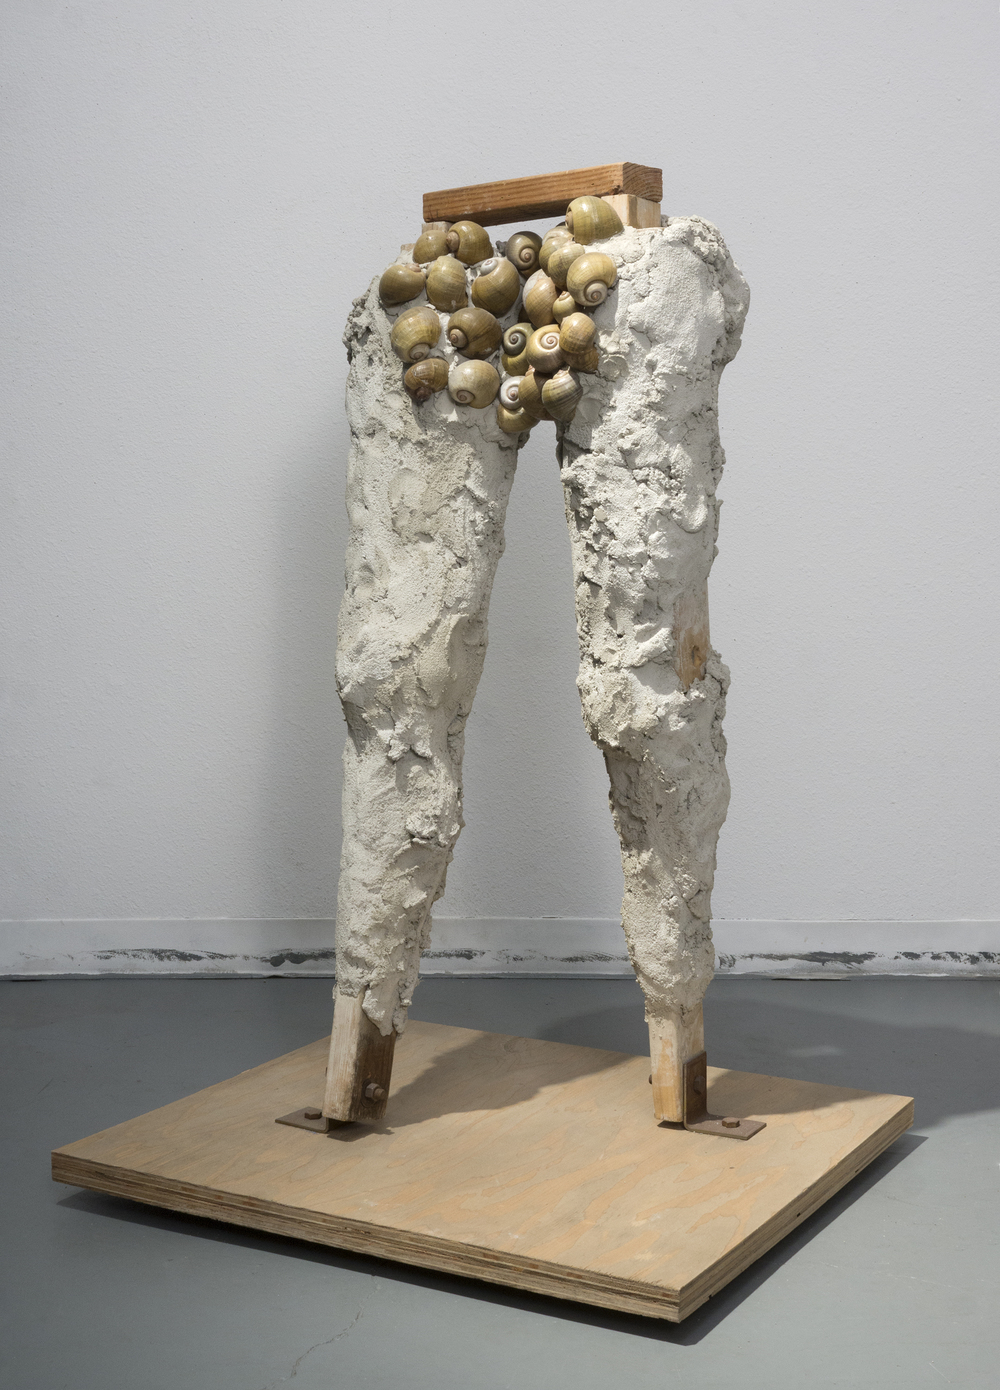 Evans Wittenberg, Untitled Figure with Snails, 2015 cement, wood, apple snail shells 46 x 28 x 28 inches